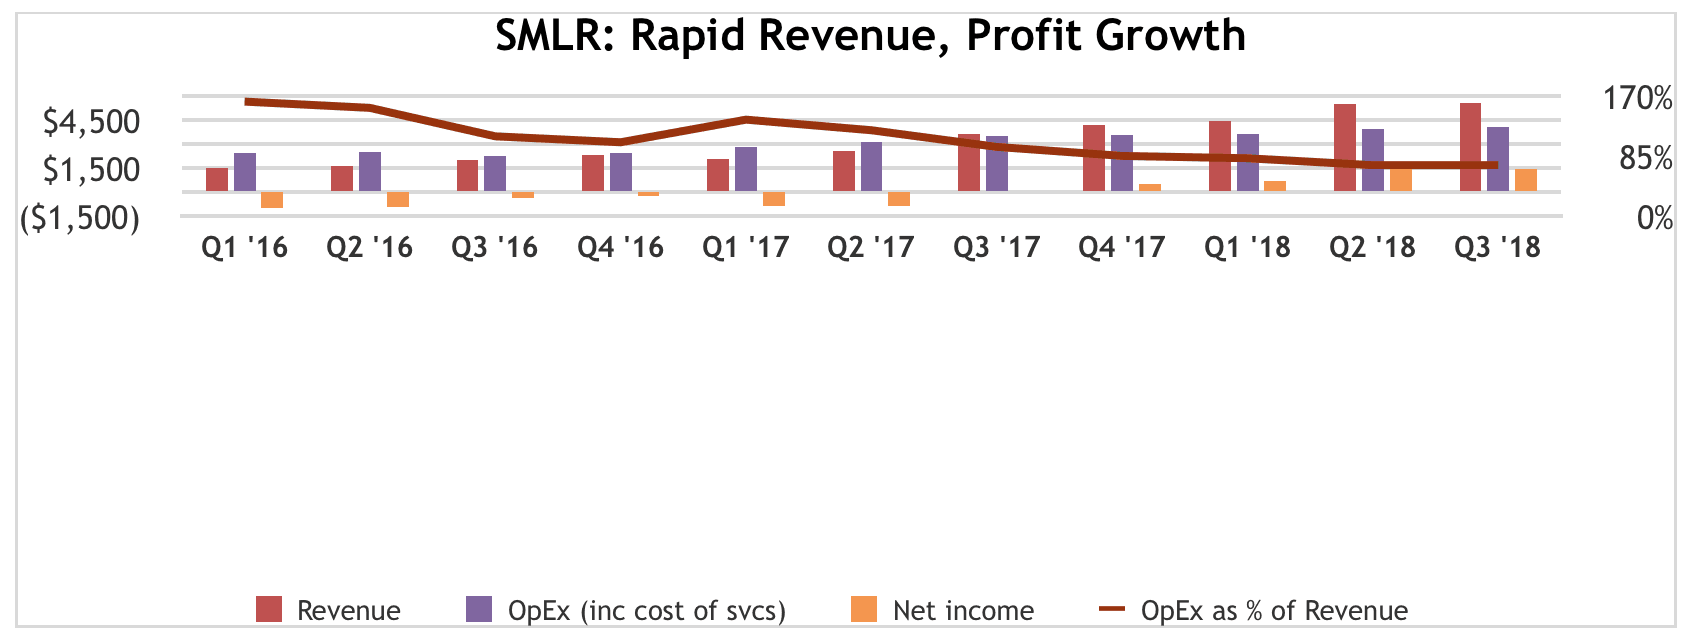 SMLR: Revenue up 55%, cash flow continues to churn, balance sheet cleaned, moving PT to $35/share